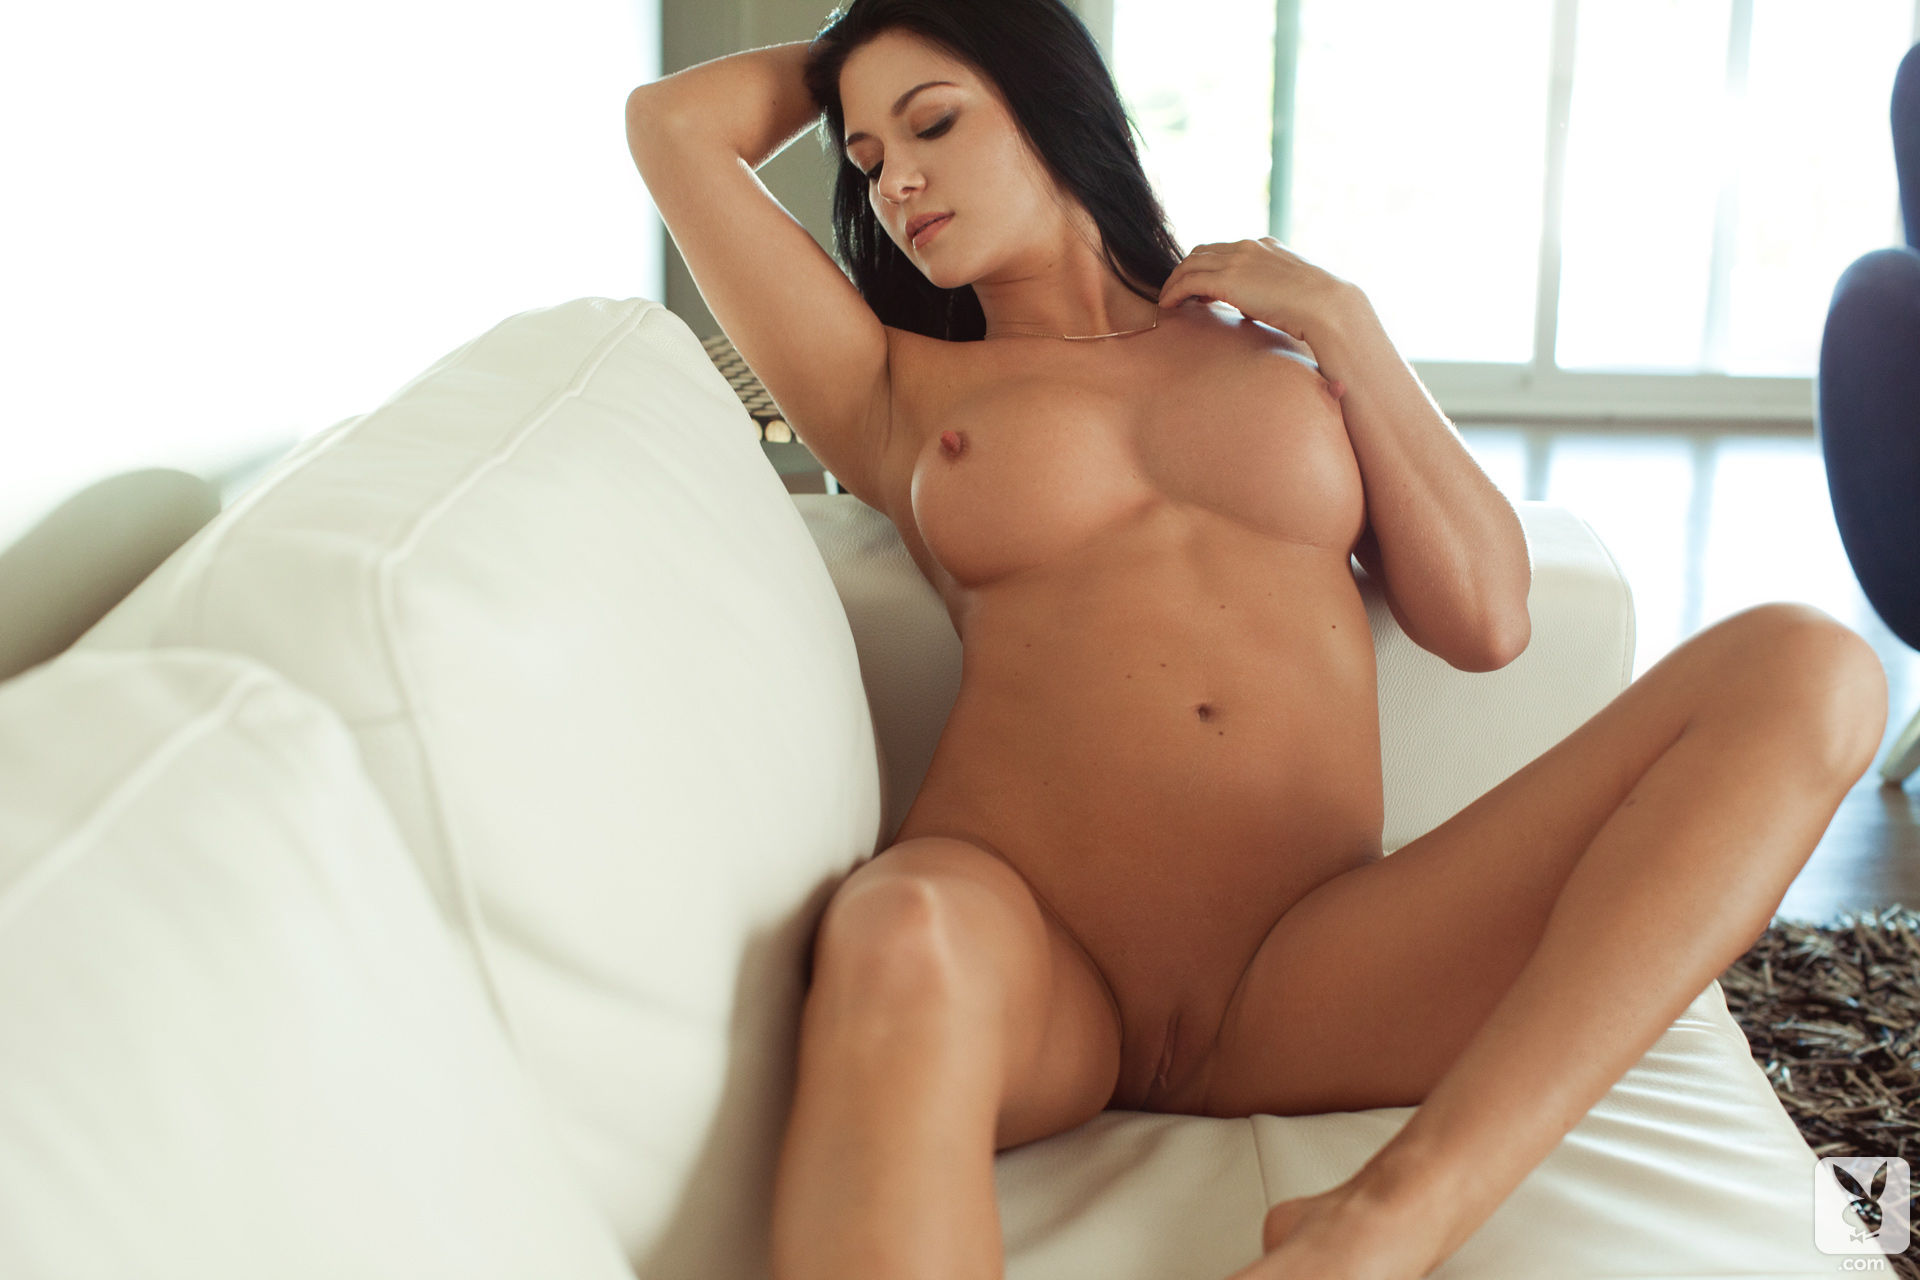 Sexy european brunette stunning tits amazing body and lips